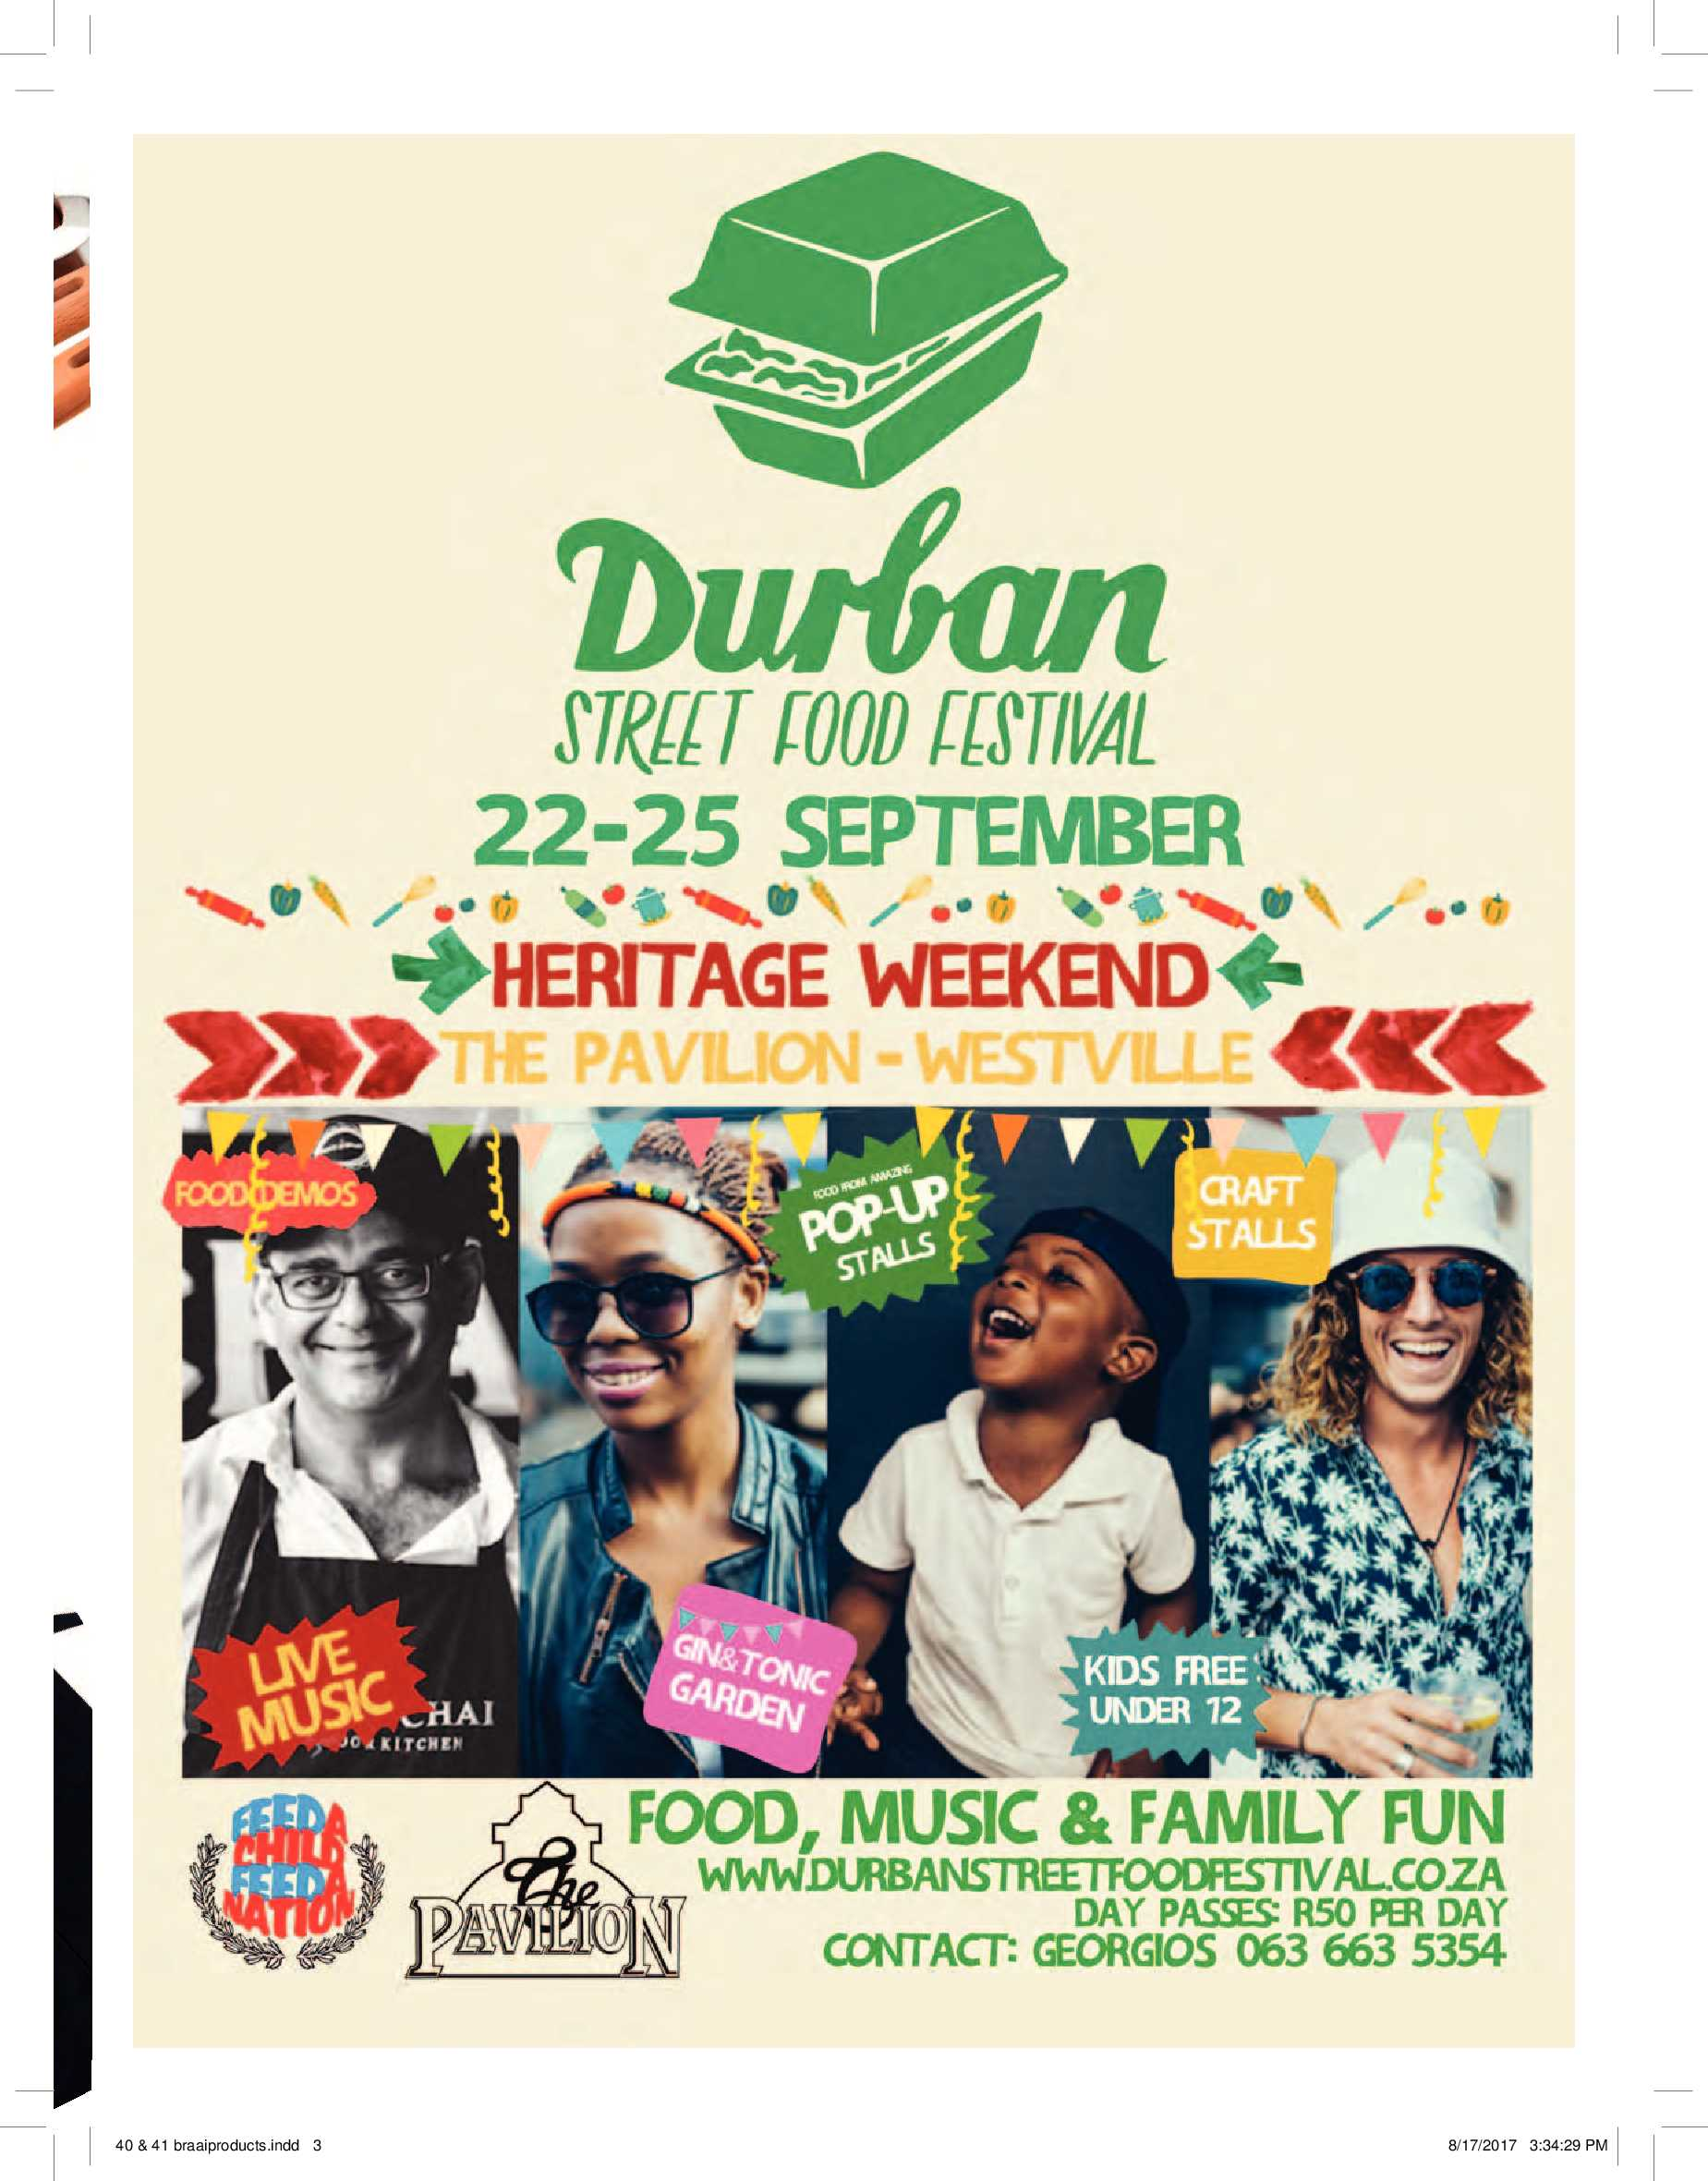 get-durban-25-september-2017-epapers-page-43